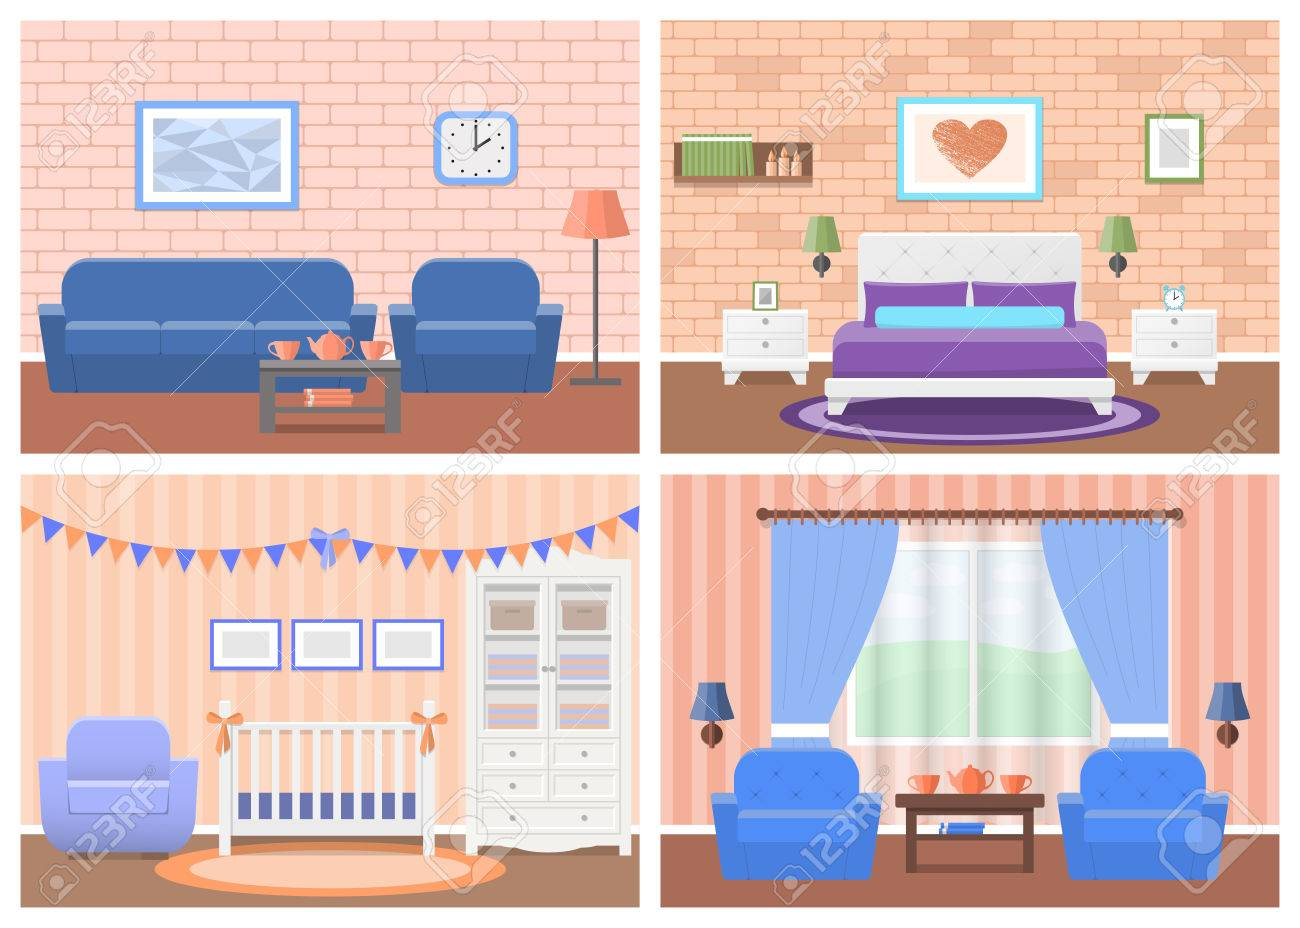 Rooms Interiors Vector Furniture Living Room Bedroom Hotel